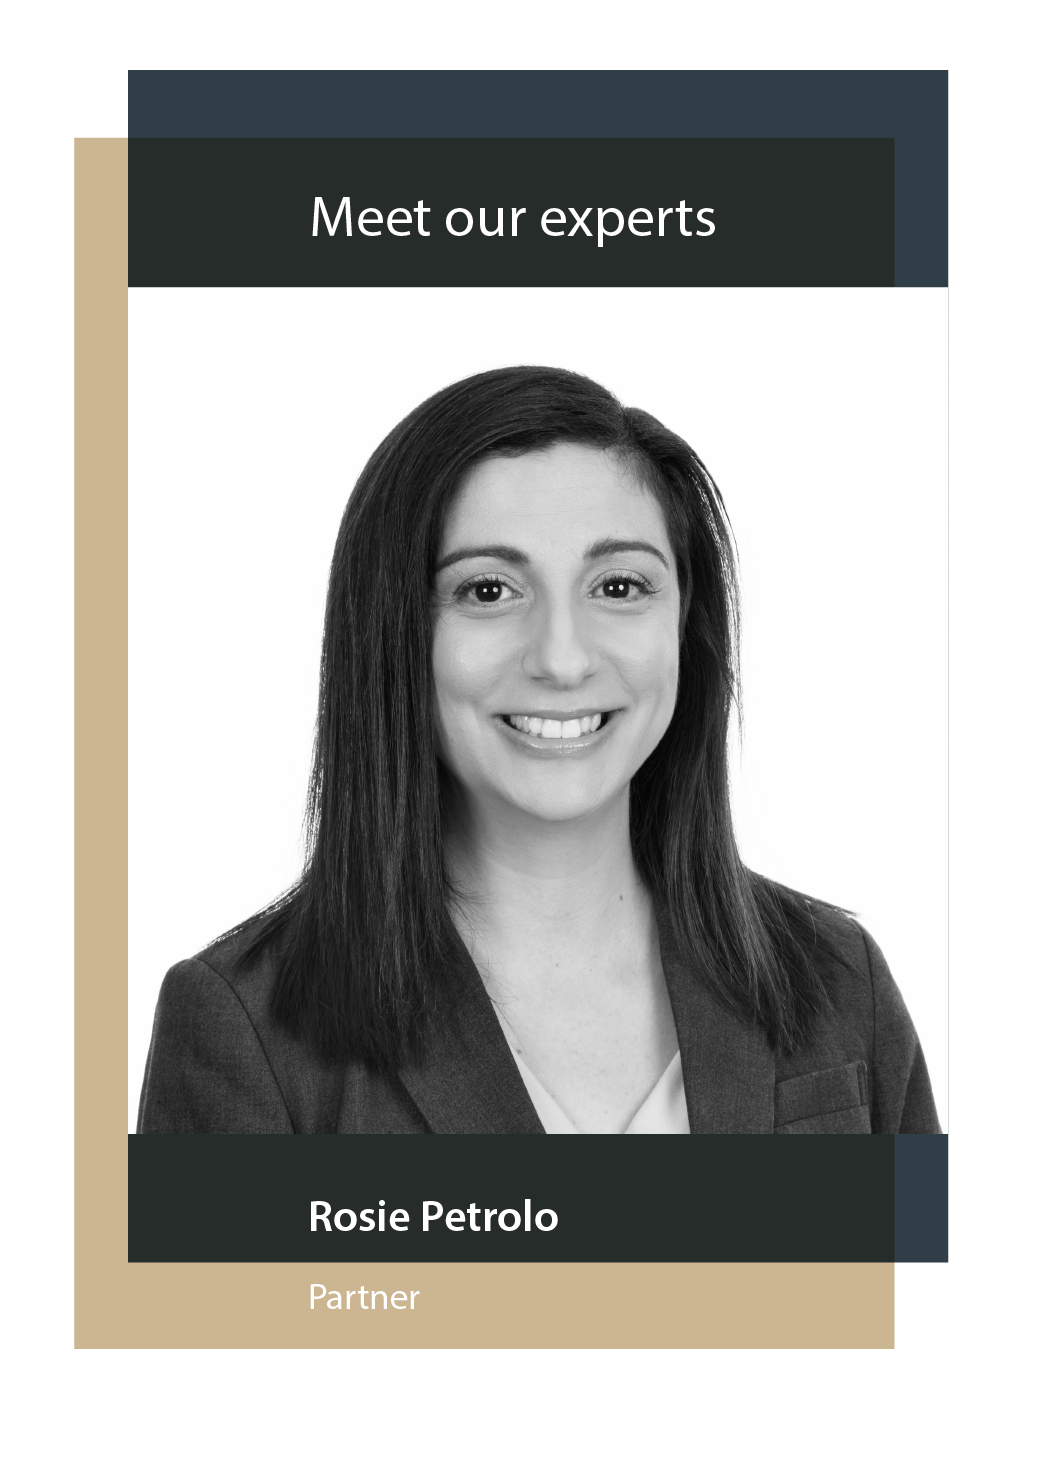 meet our experts-02